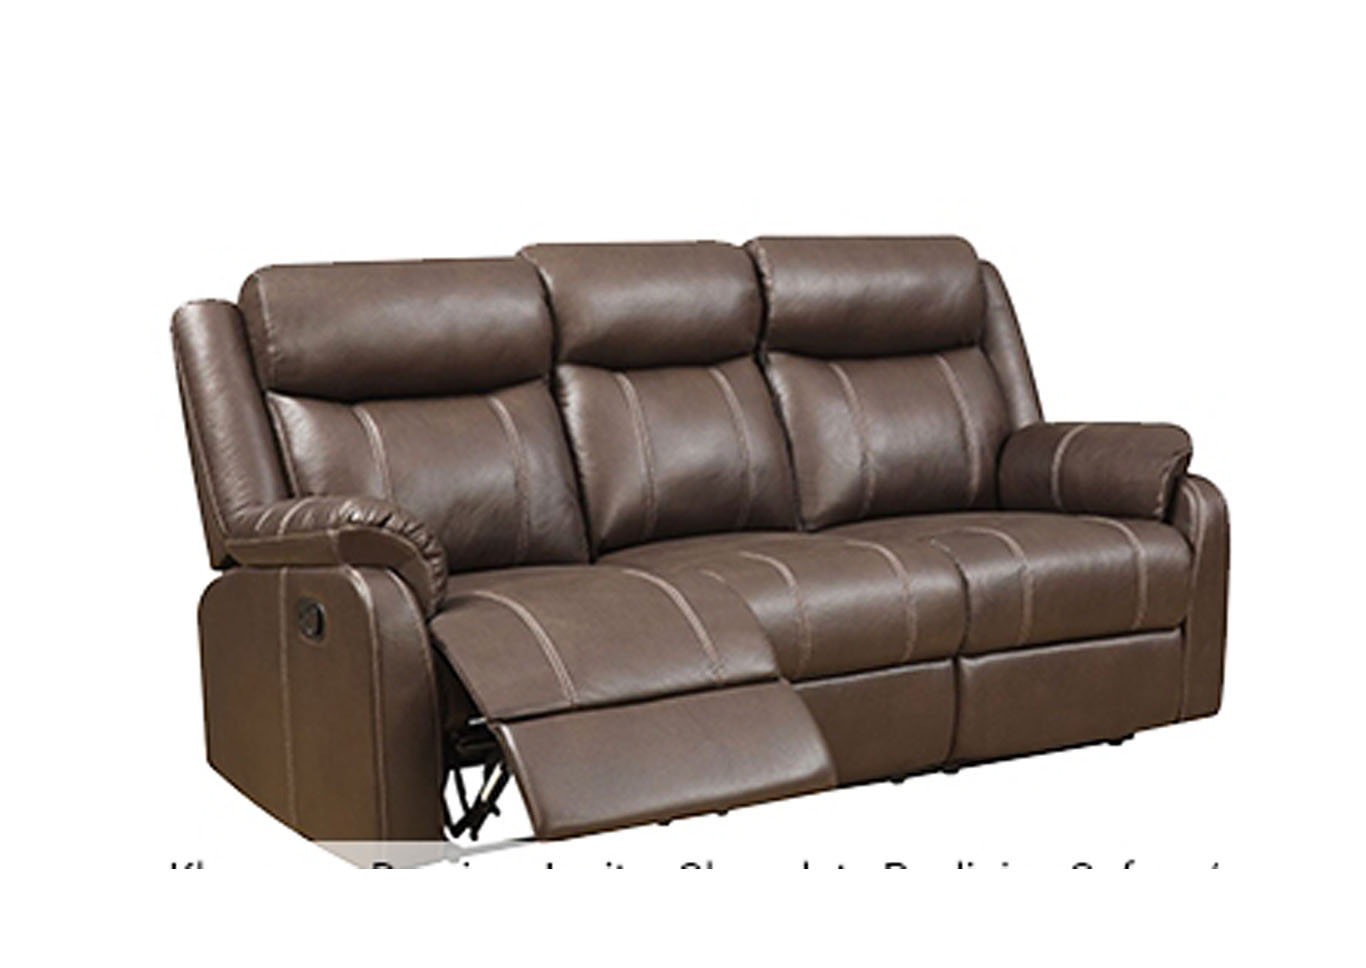 Domino Dual Reclining Sofa and Love Seat,Instore